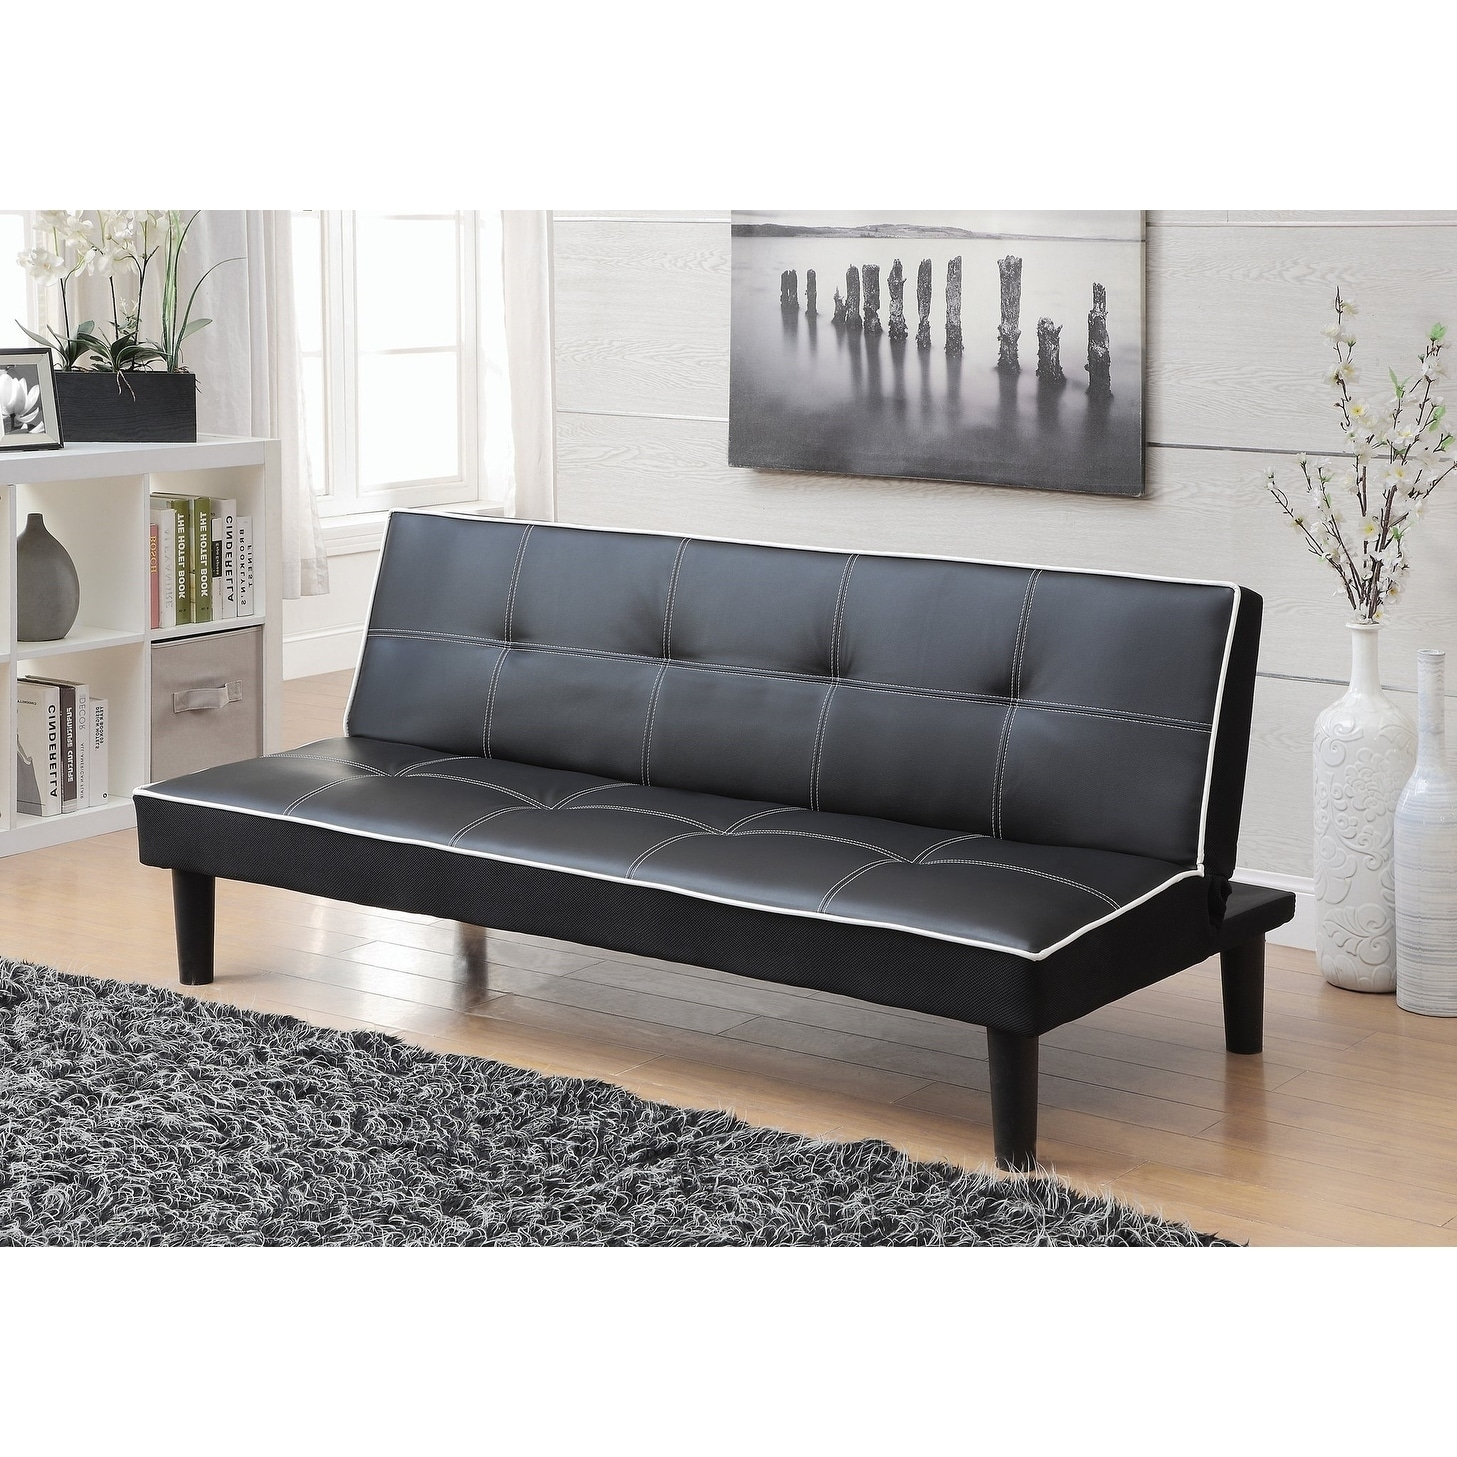 Terrific Fenton Black Leather Upholstered Tufted Sofa Bed With White Piping Pabps2019 Chair Design Images Pabps2019Com